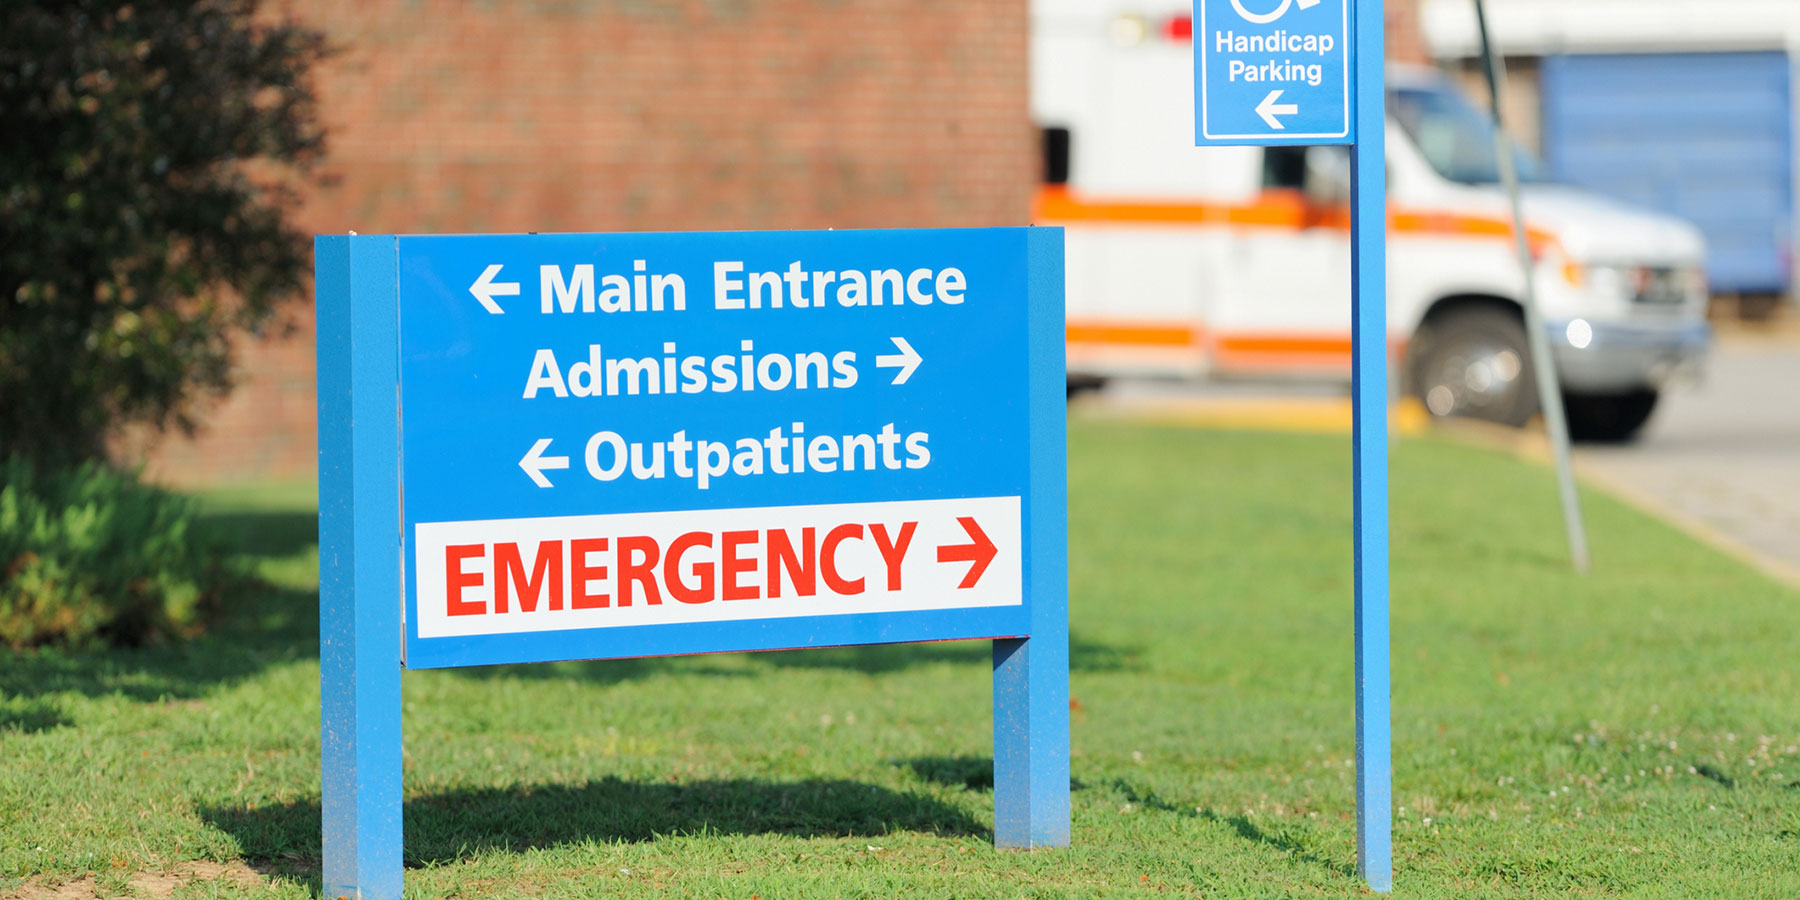 New Way to Identify Patients Likely to Return to Hospital Could Reduce Future Readmissions